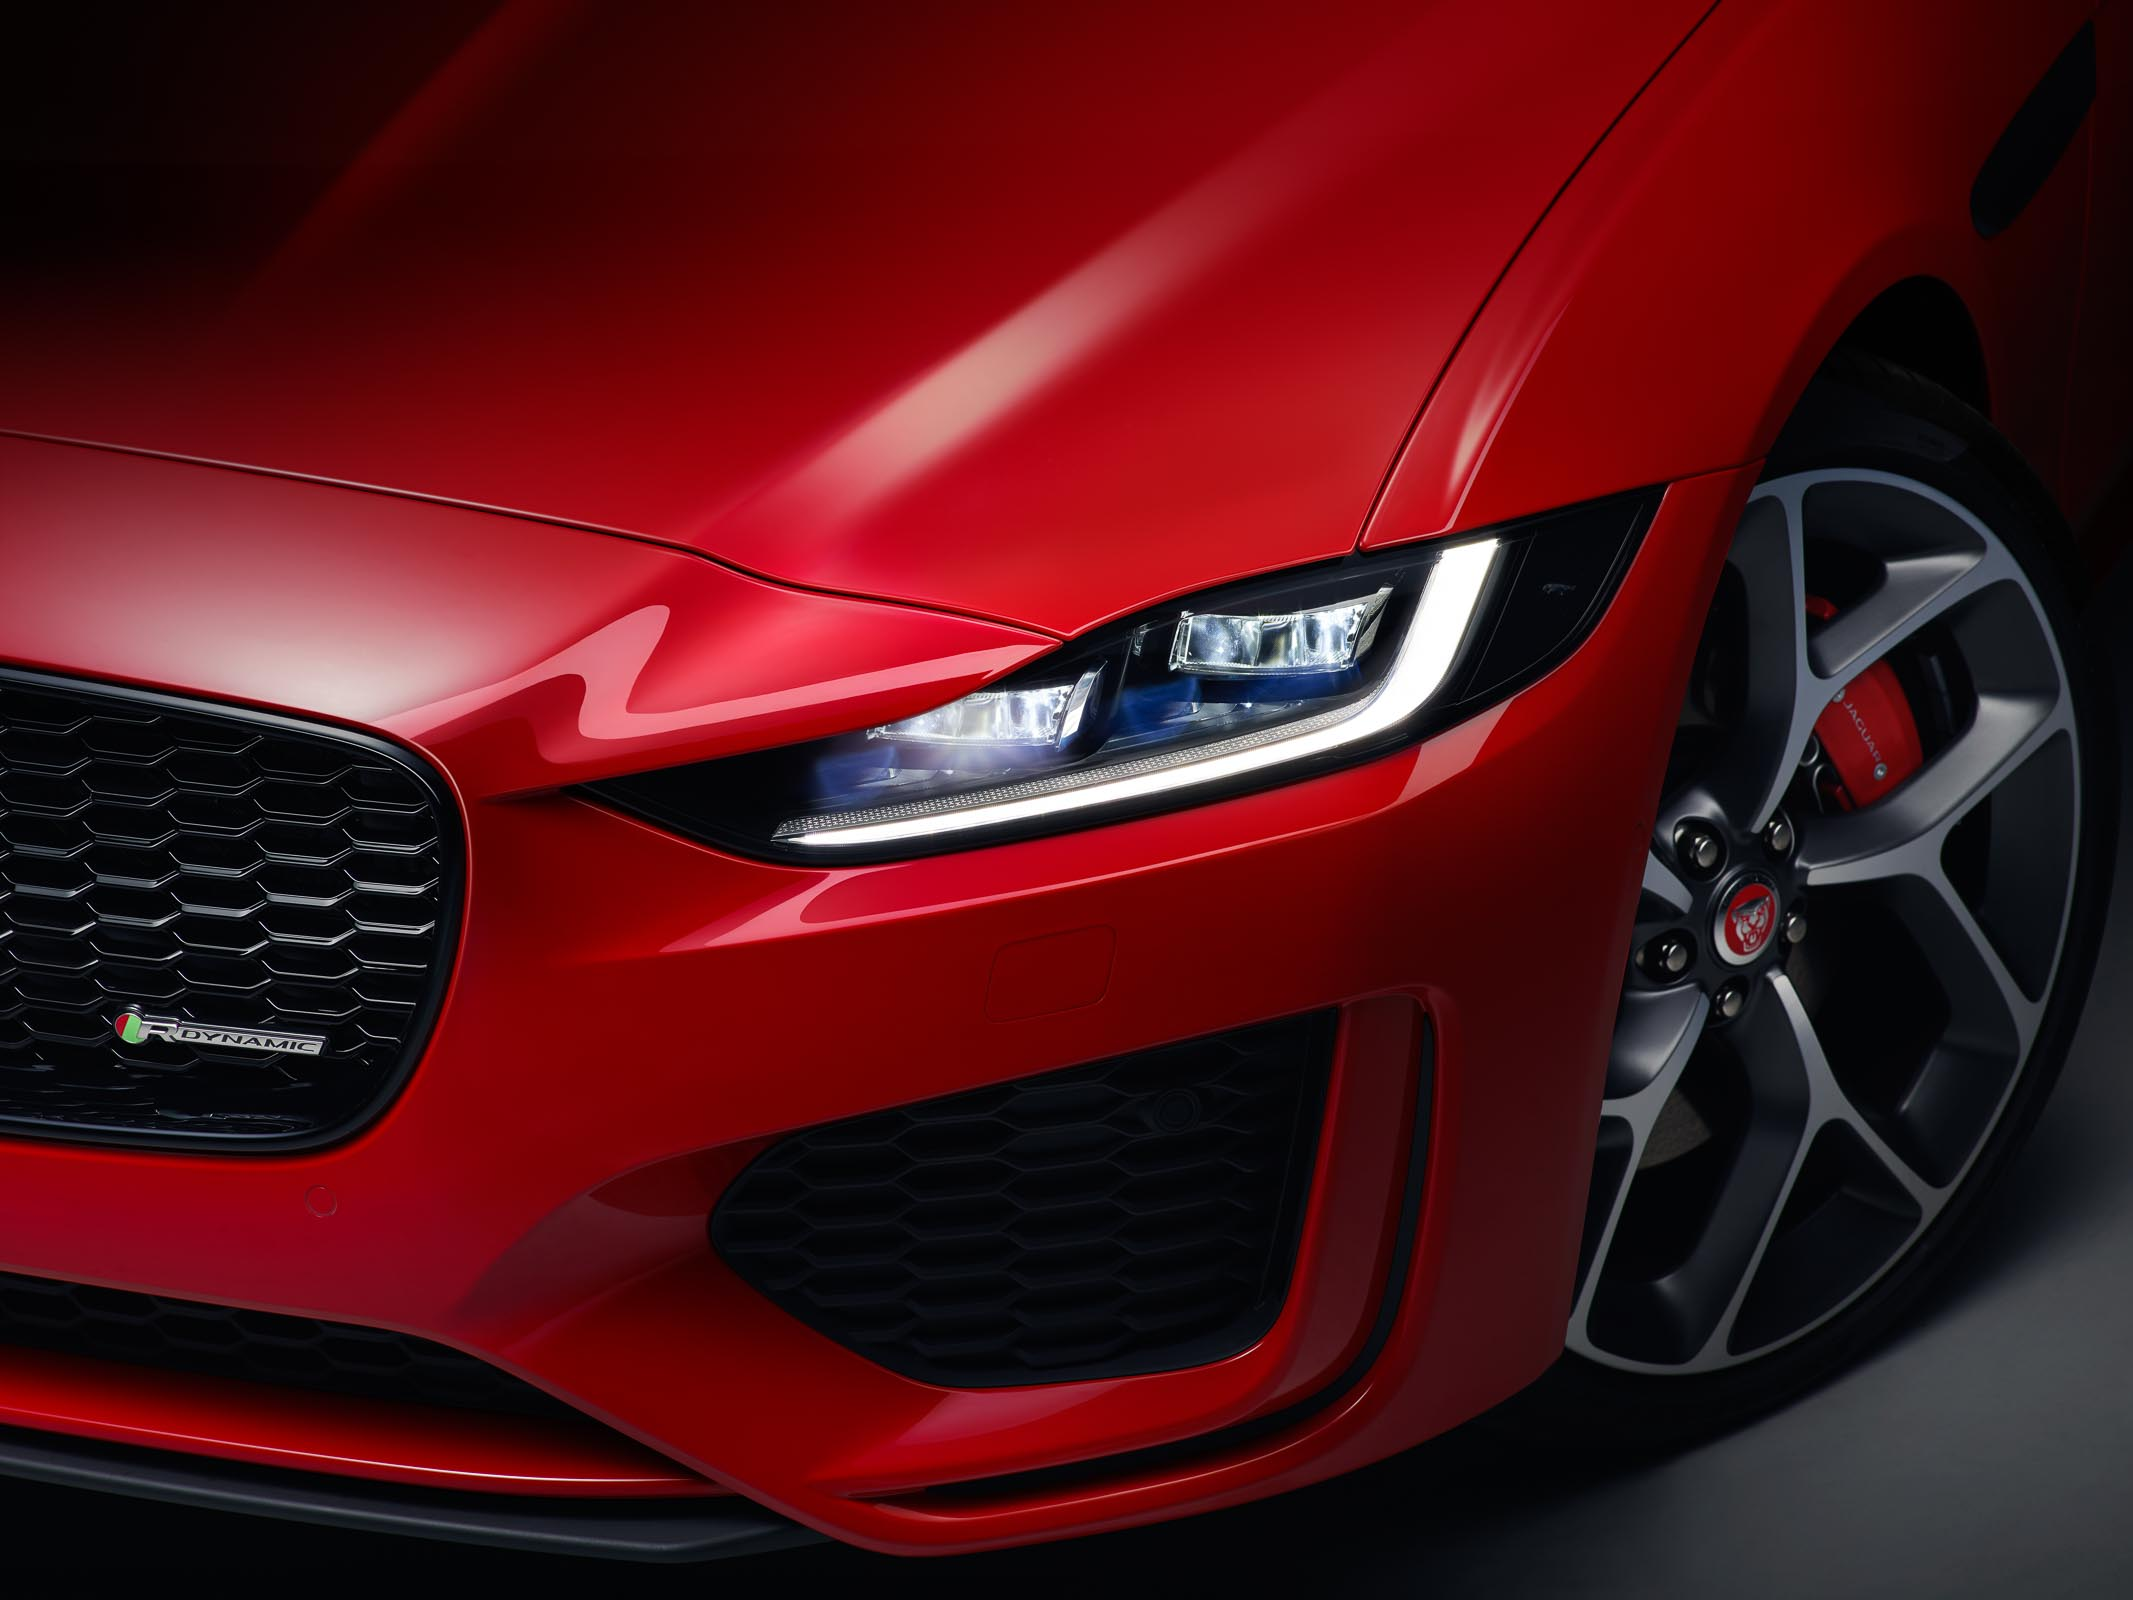 Jaguar_XE_Caldera_Red_RDynamic_Head_Light_On